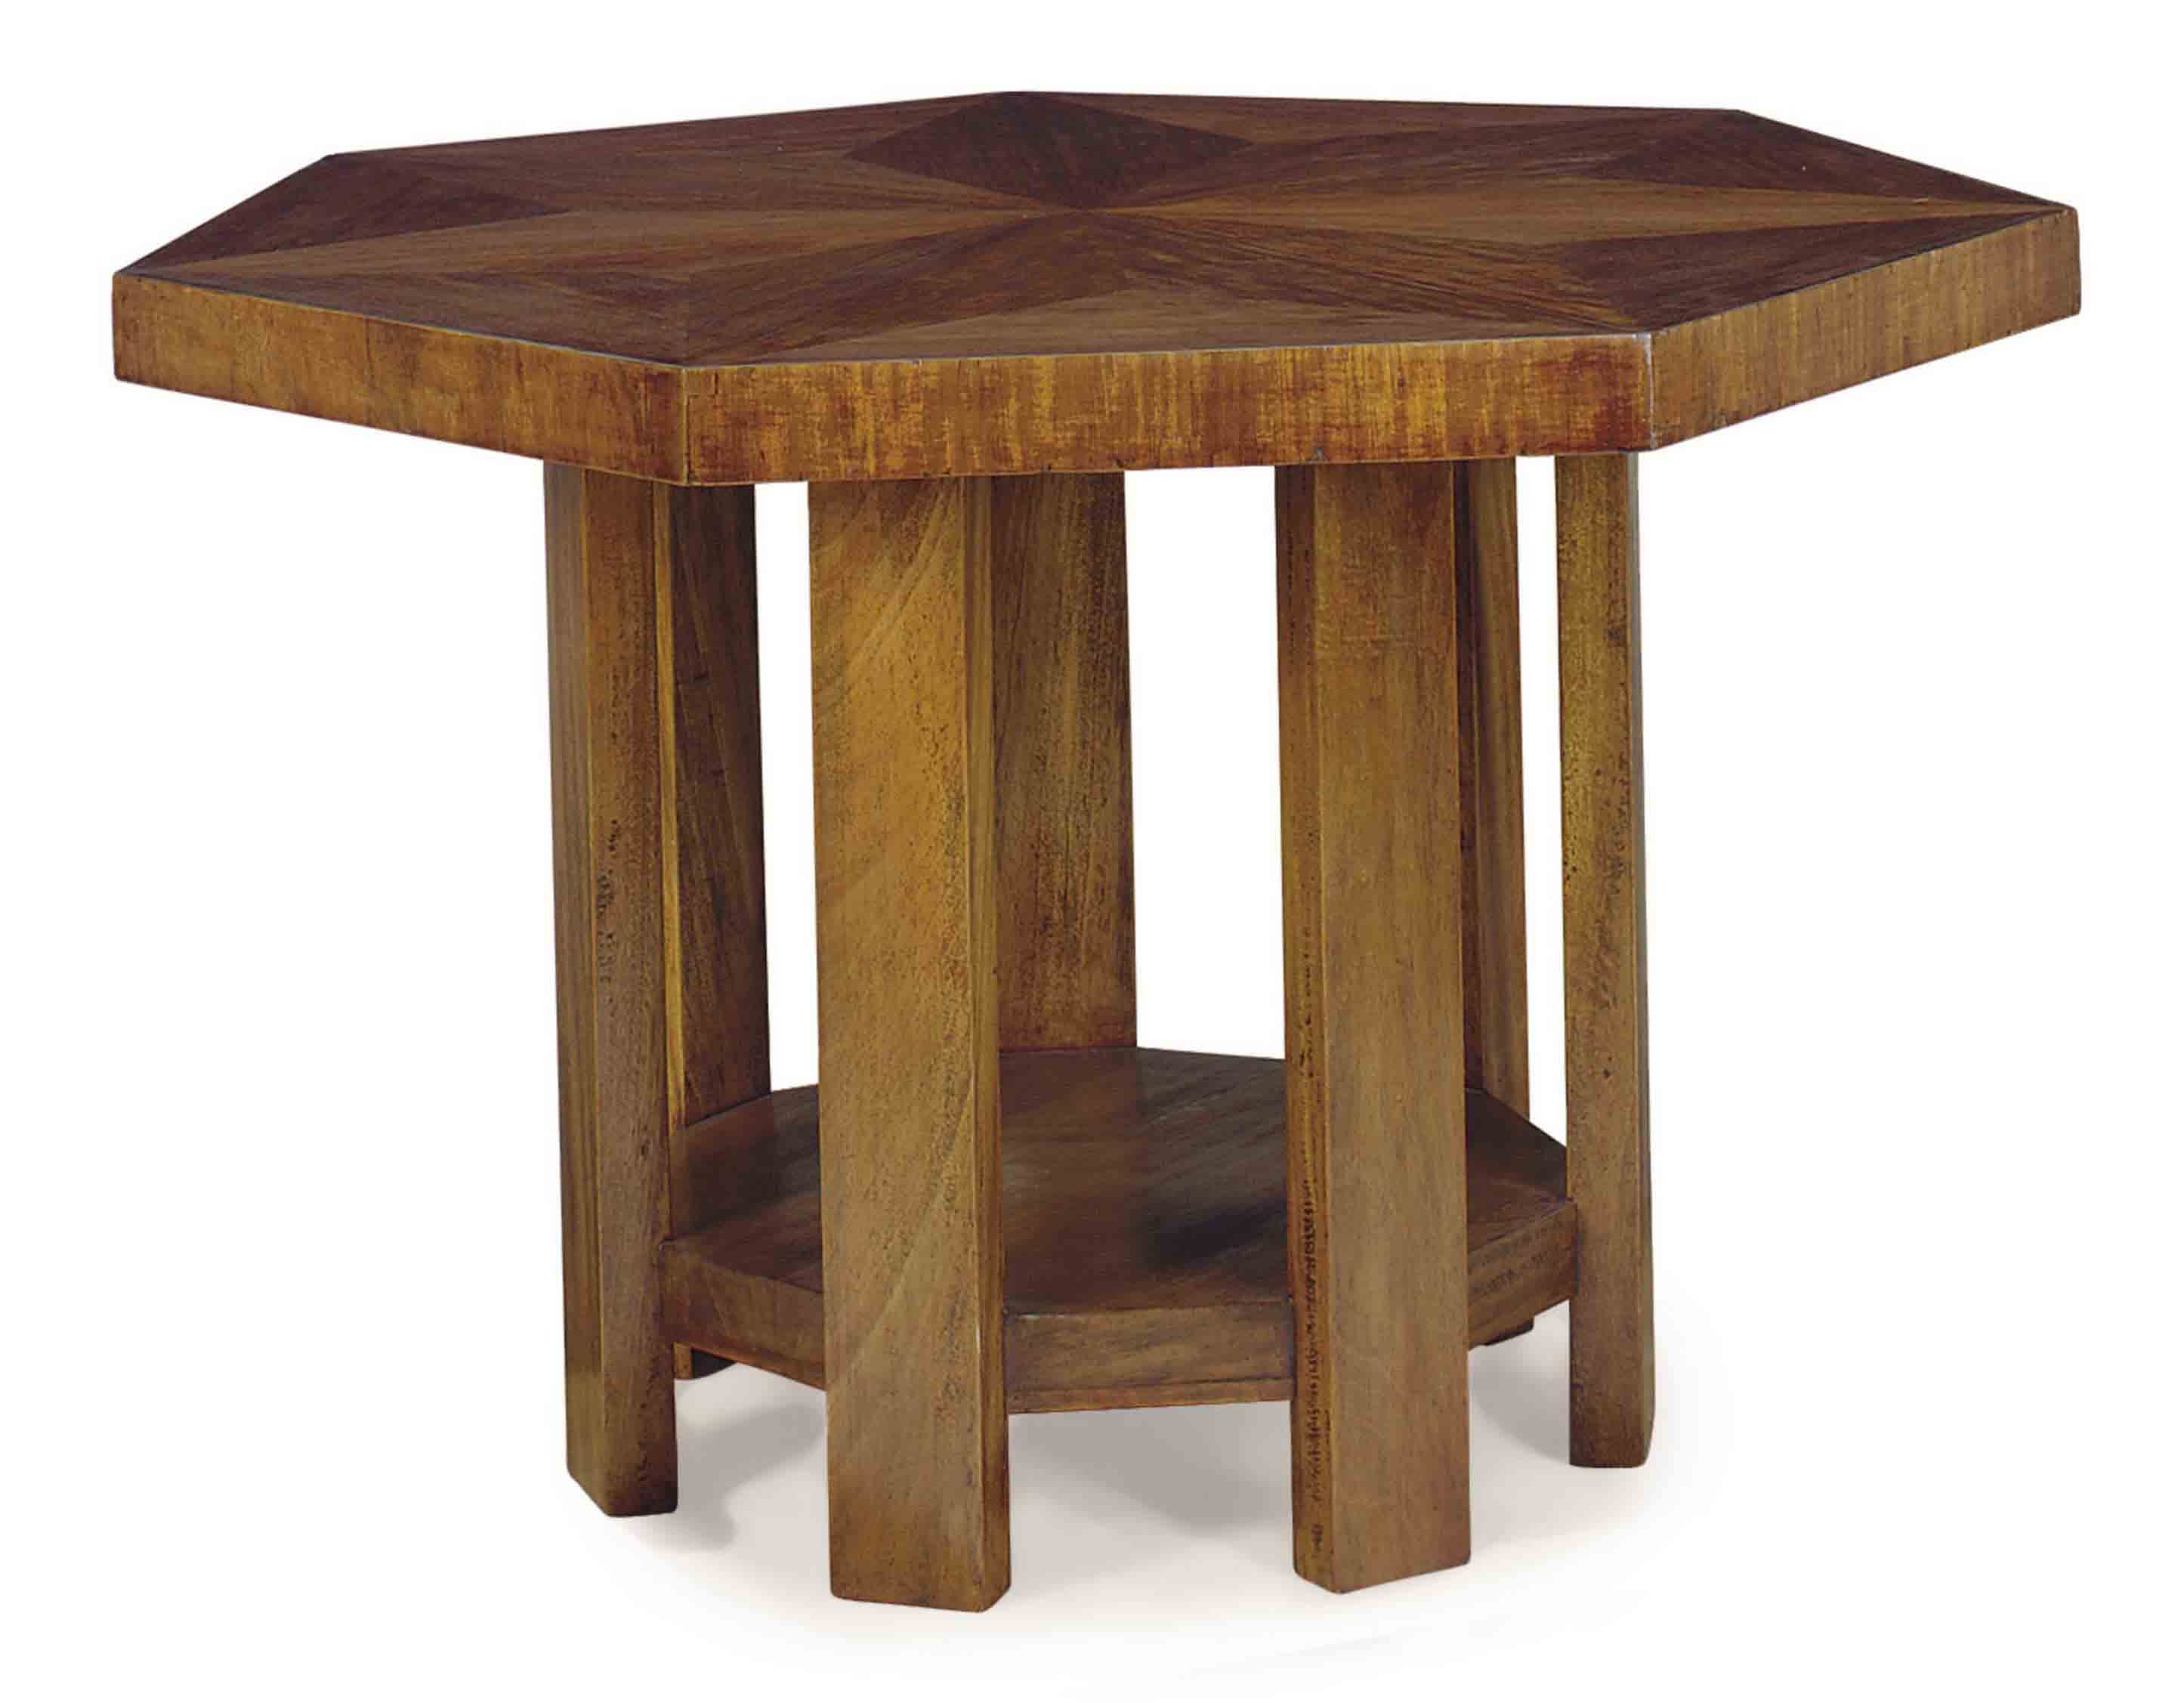 A FRENCH MAHOGANY SEVEN-SIDED CENTER TABLE,